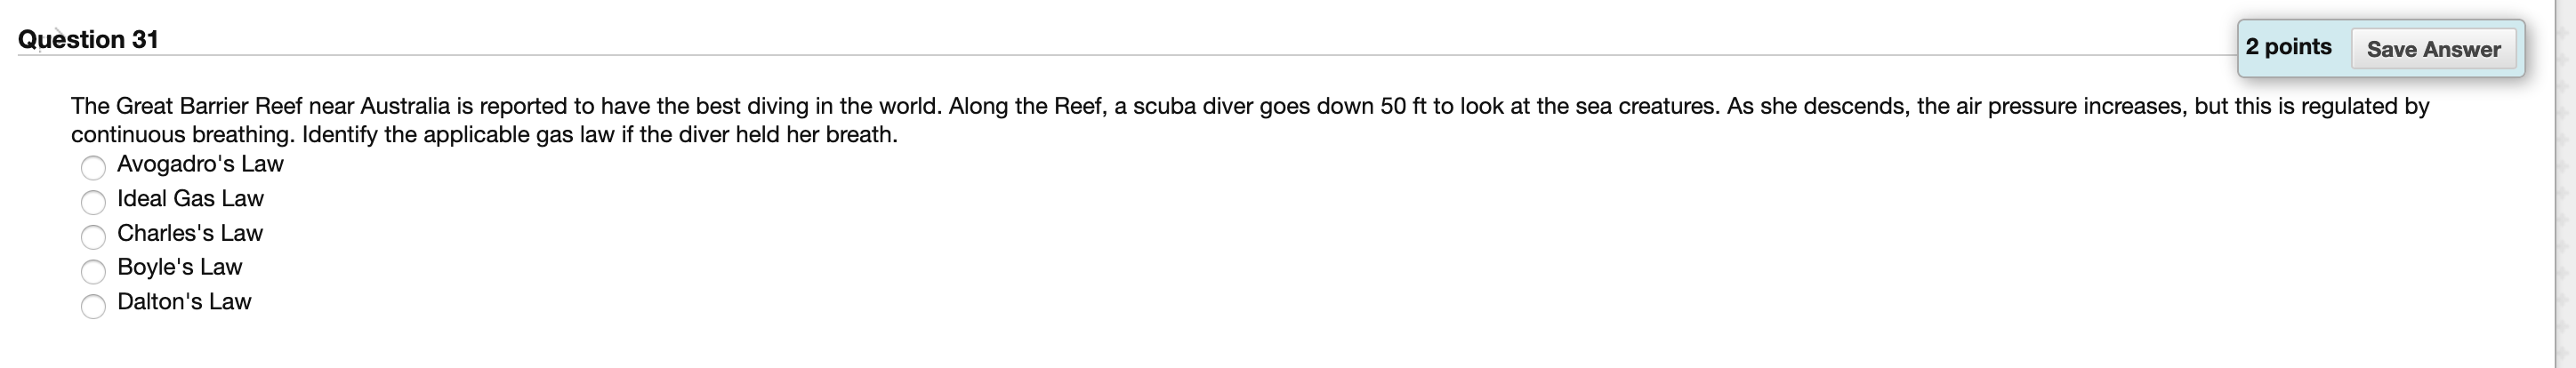 Solved: Question 31 2 Points Save Answer The Great Barrier ...